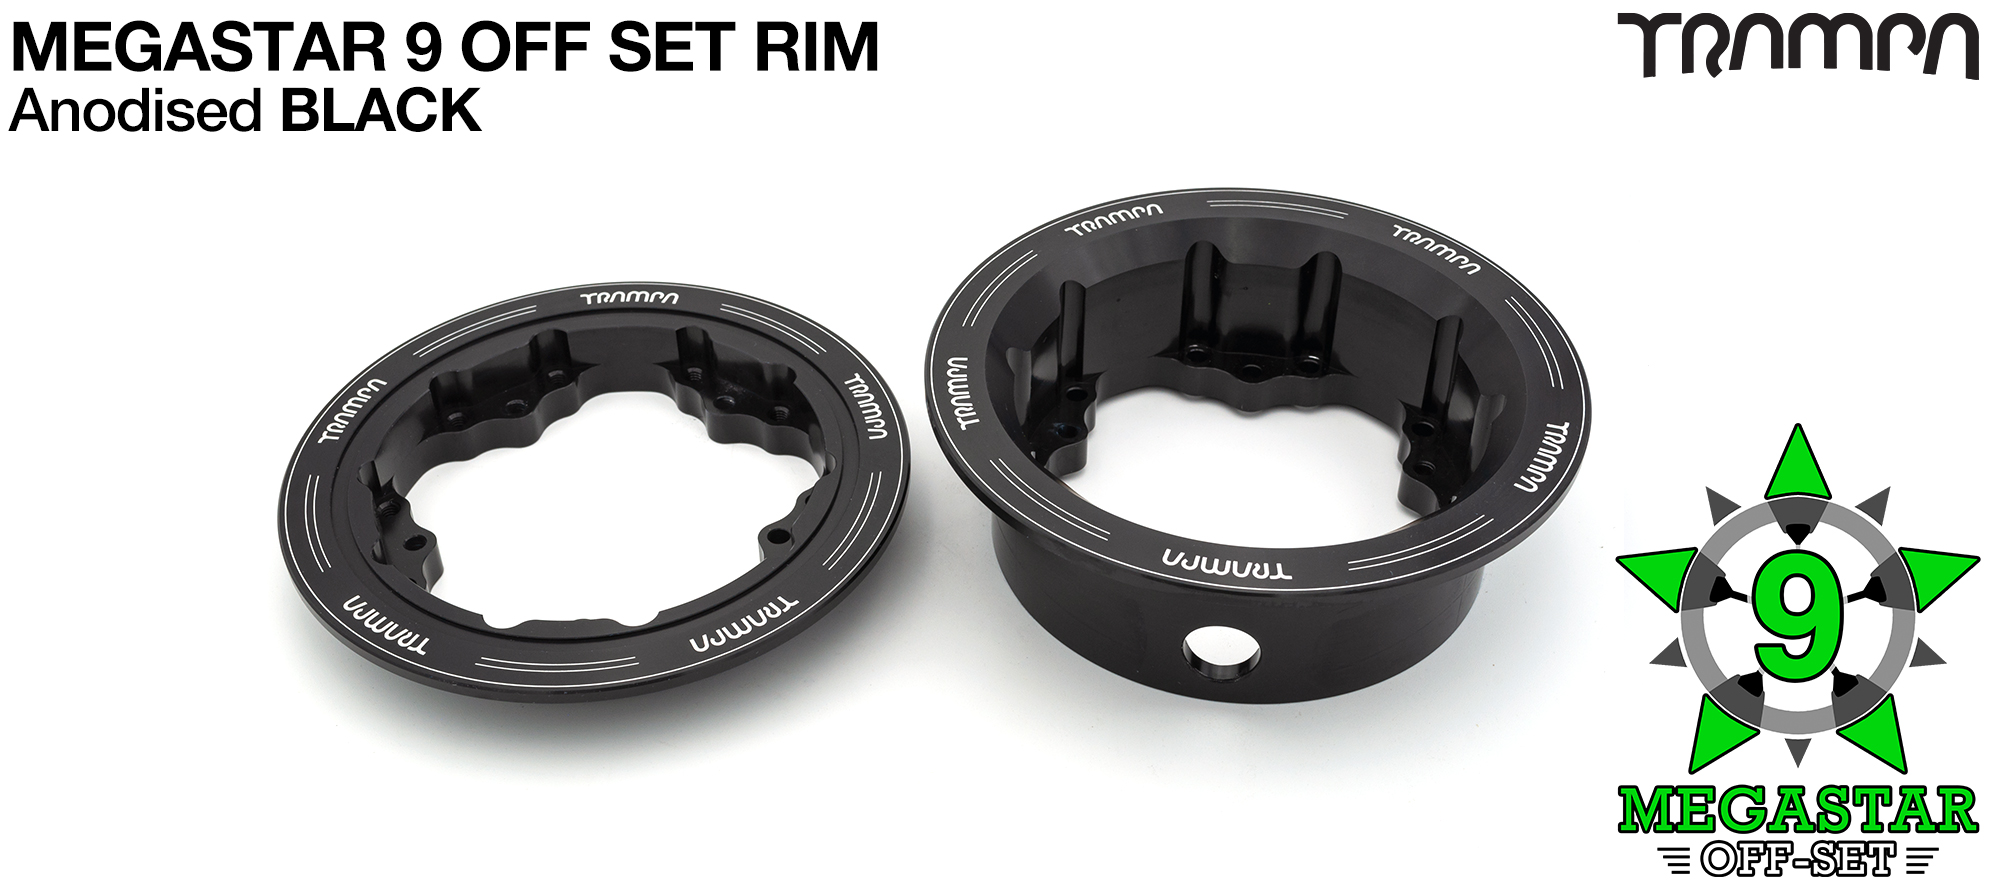 BLACK 9 Inch Deep-Dish MEGASTAR rims  - OUT OF STOCK